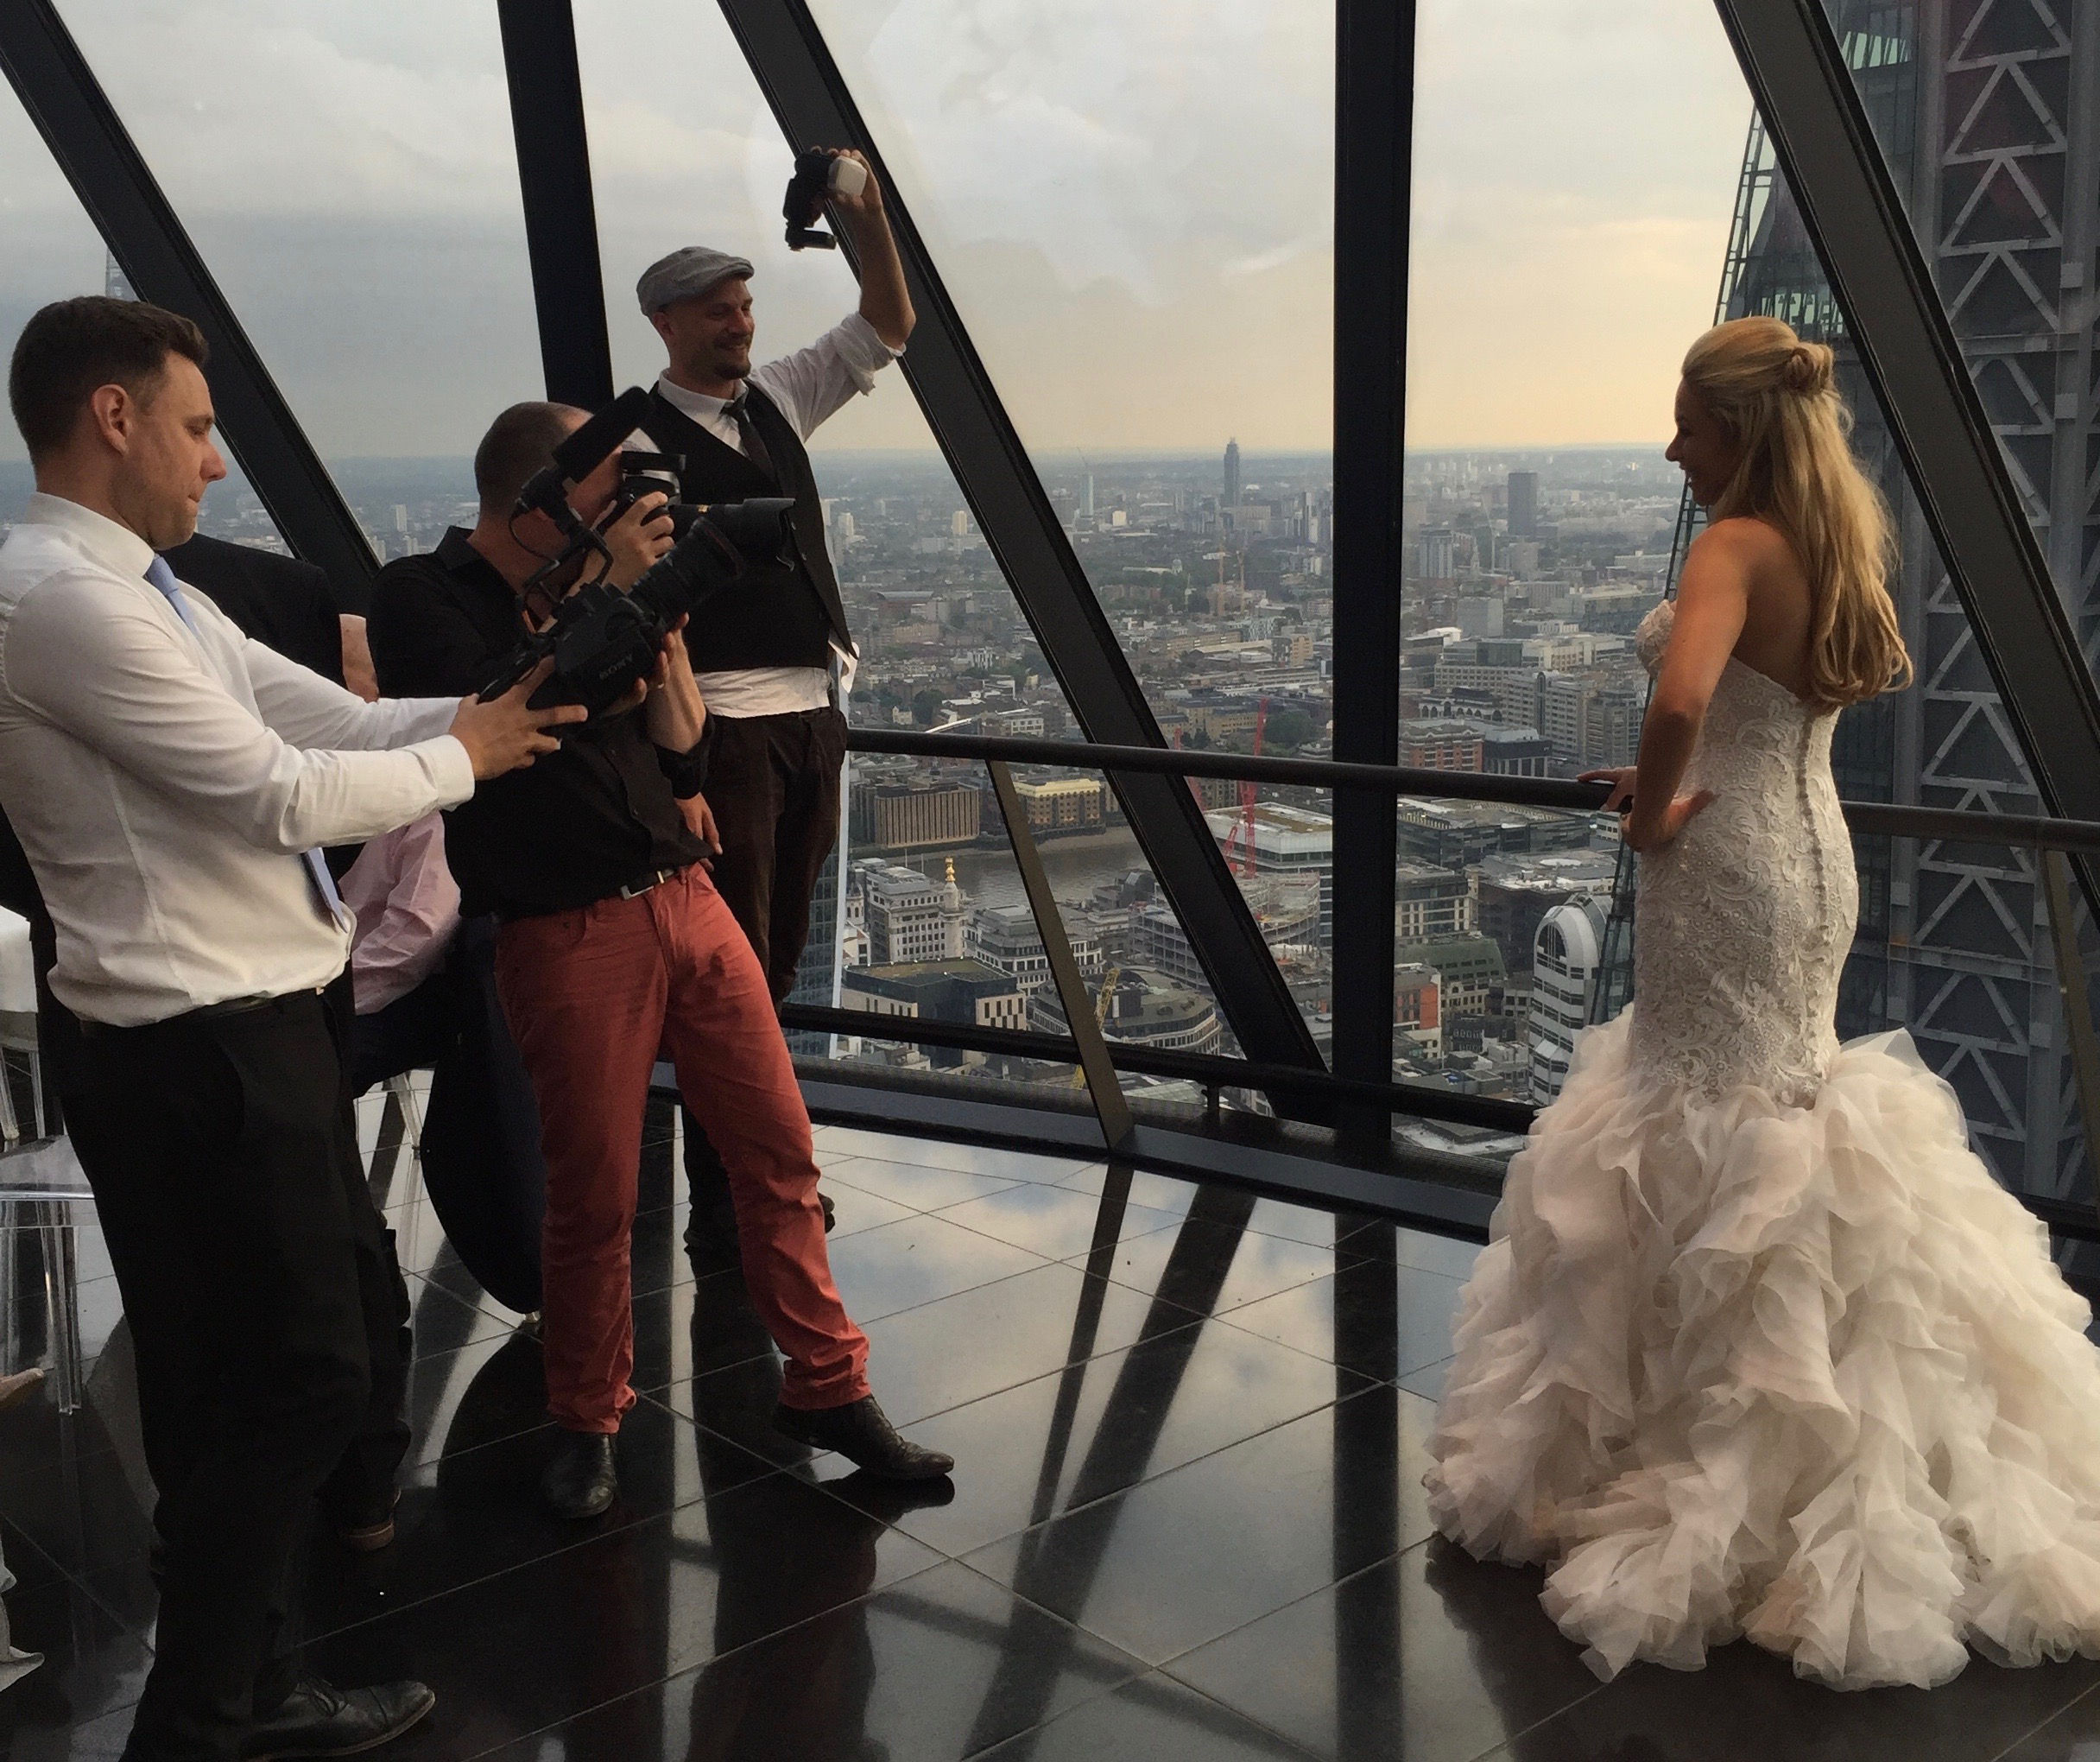 Photographer Christian Trampenau and his team capture the happy day. #GherkinWedding #BeautifulBride